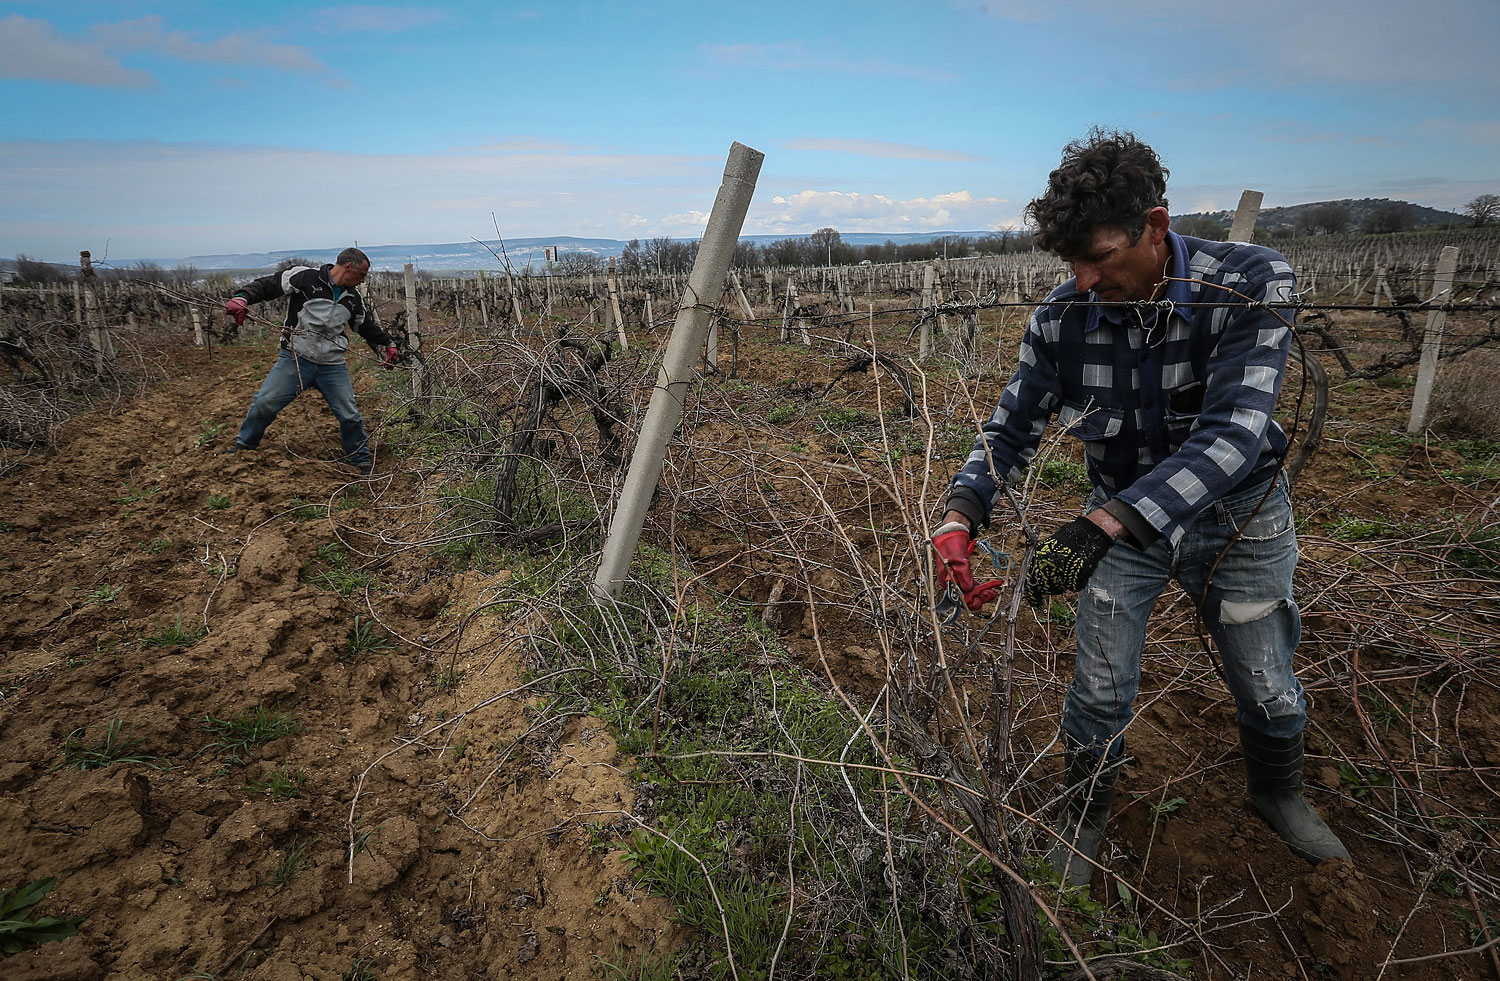 Workers prune wine grapes vine on the Massandra's vineyard near Sevastopol, Crimea, March 28, 2014.